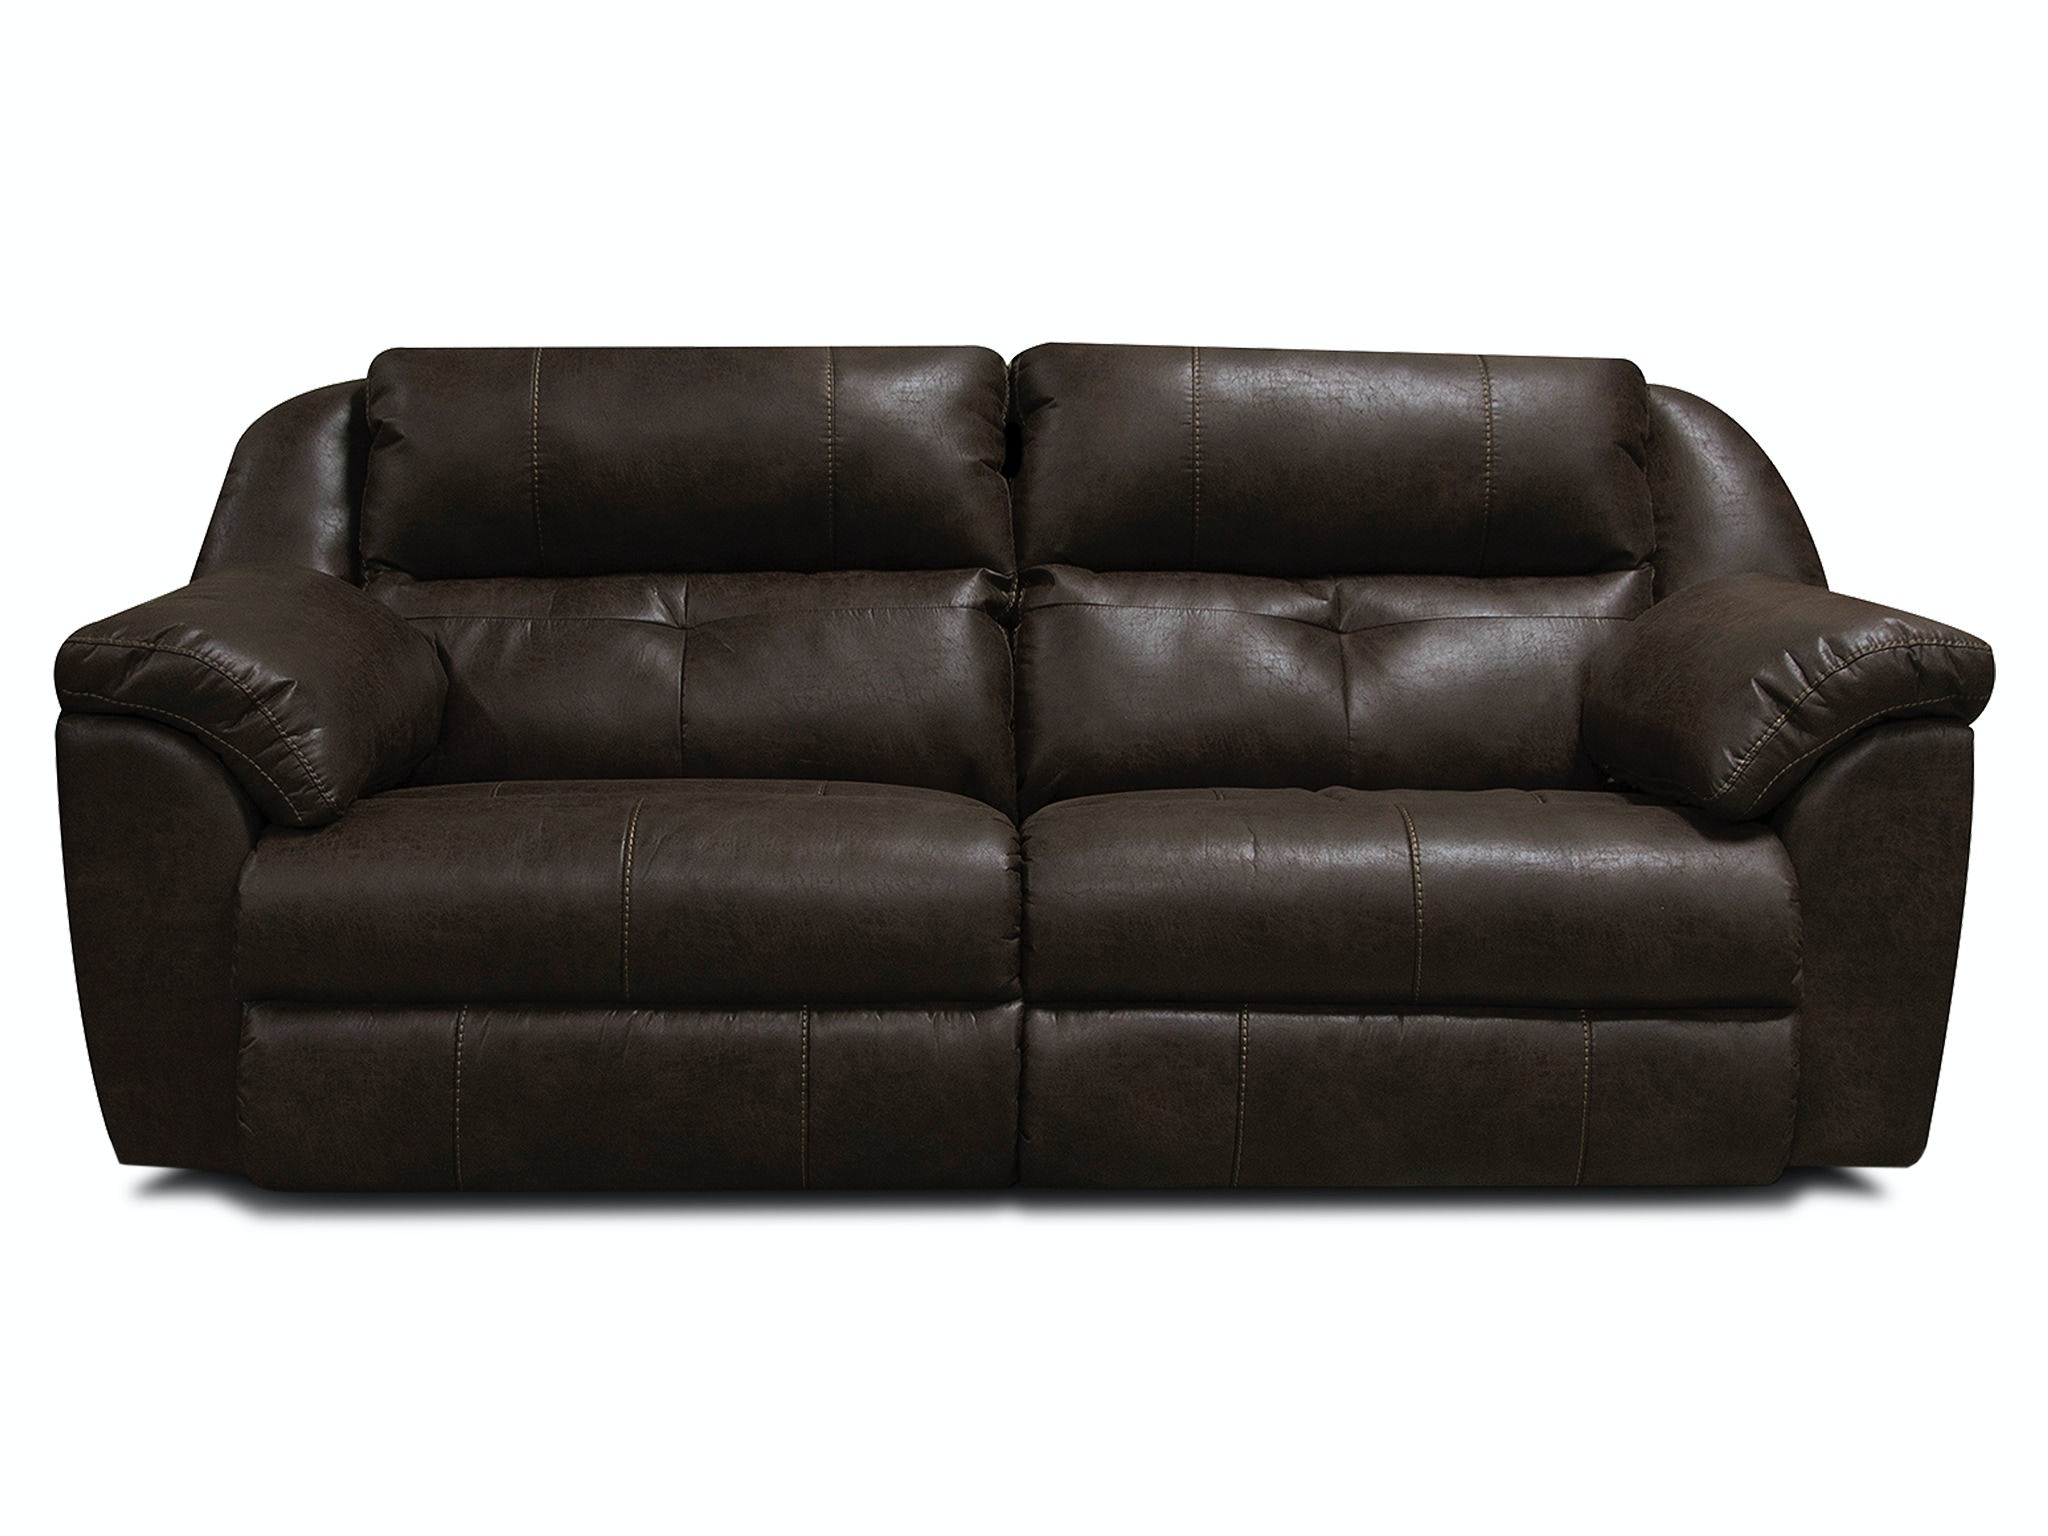 ez hang chairs loveseat instructions office chair plastic england living room double reclining sofa ez6d01h